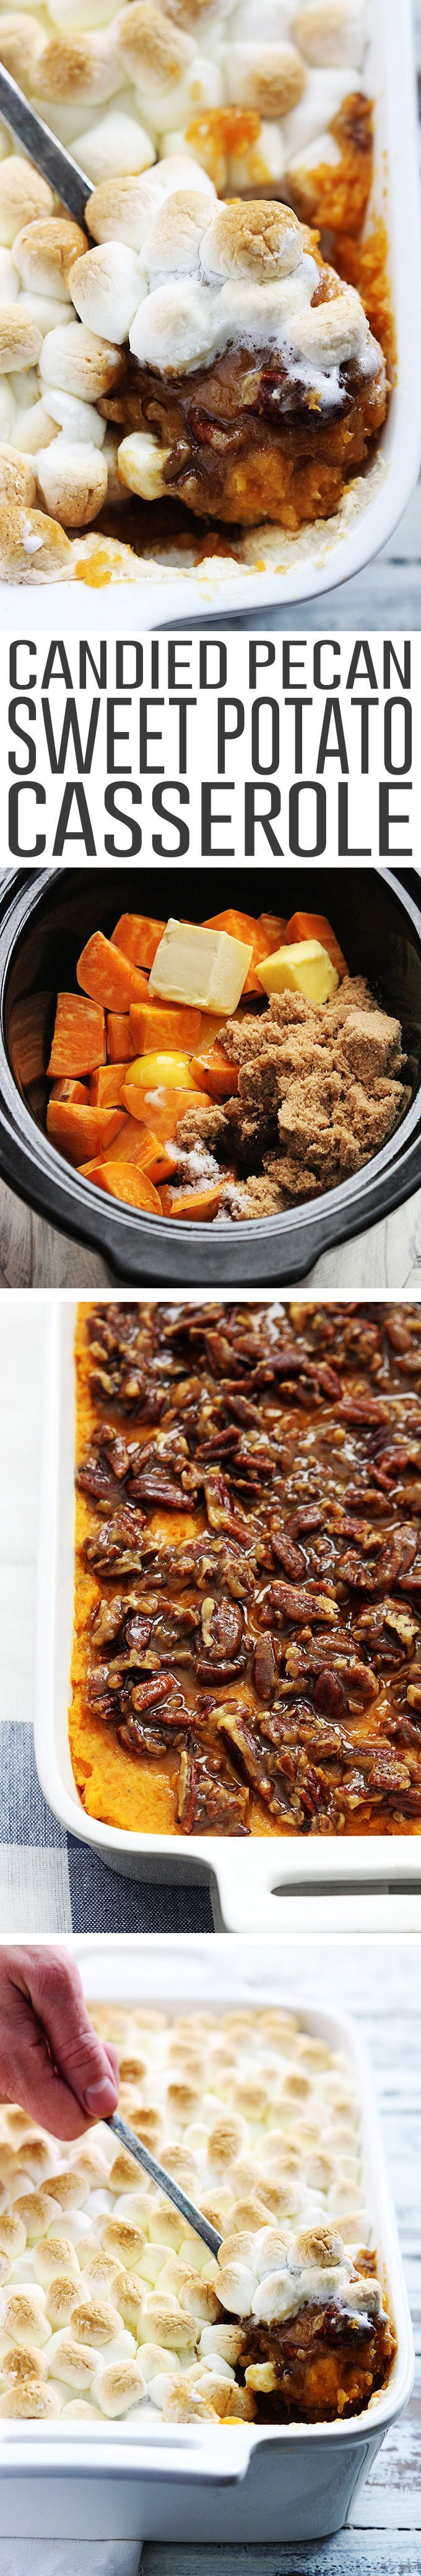 441 best Thanksgiving Recipes and Decor images on Pinterest